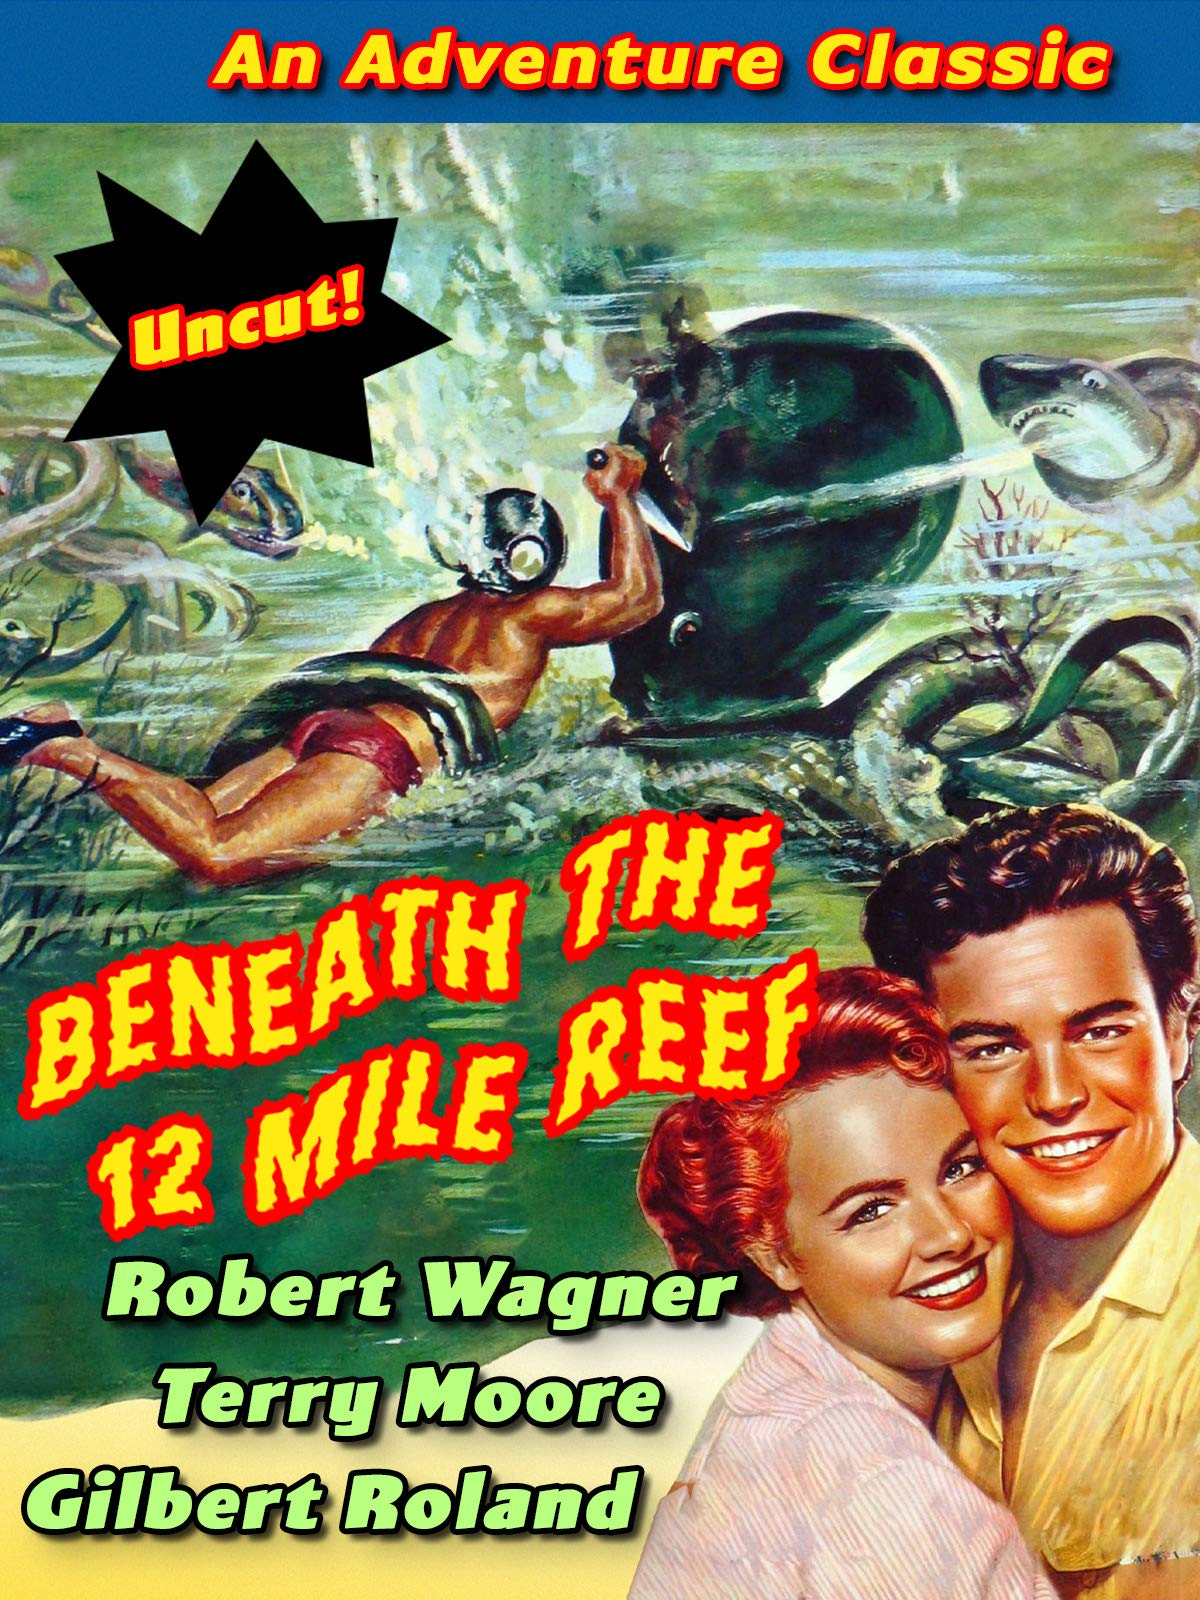 Beneath The 12 Mile Reef - Robert Wagner, Terry Moore, Gilbert Roland, An Adventure Classic, Uncut! on Amazon Prime Video UK